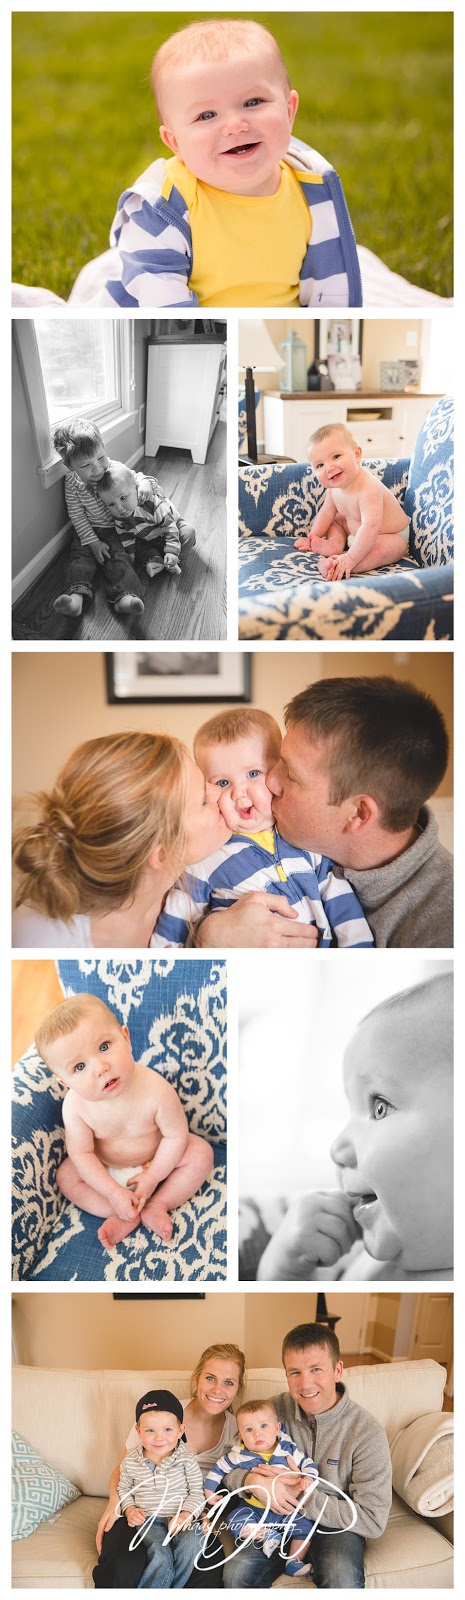 © MHaas Photography, 2 year old, 6 months, baby, boy, brother, brothers, child, child photographer, family, family home, Family Photos Louisville, family portraits louisville, grandparents, home decor, toddler